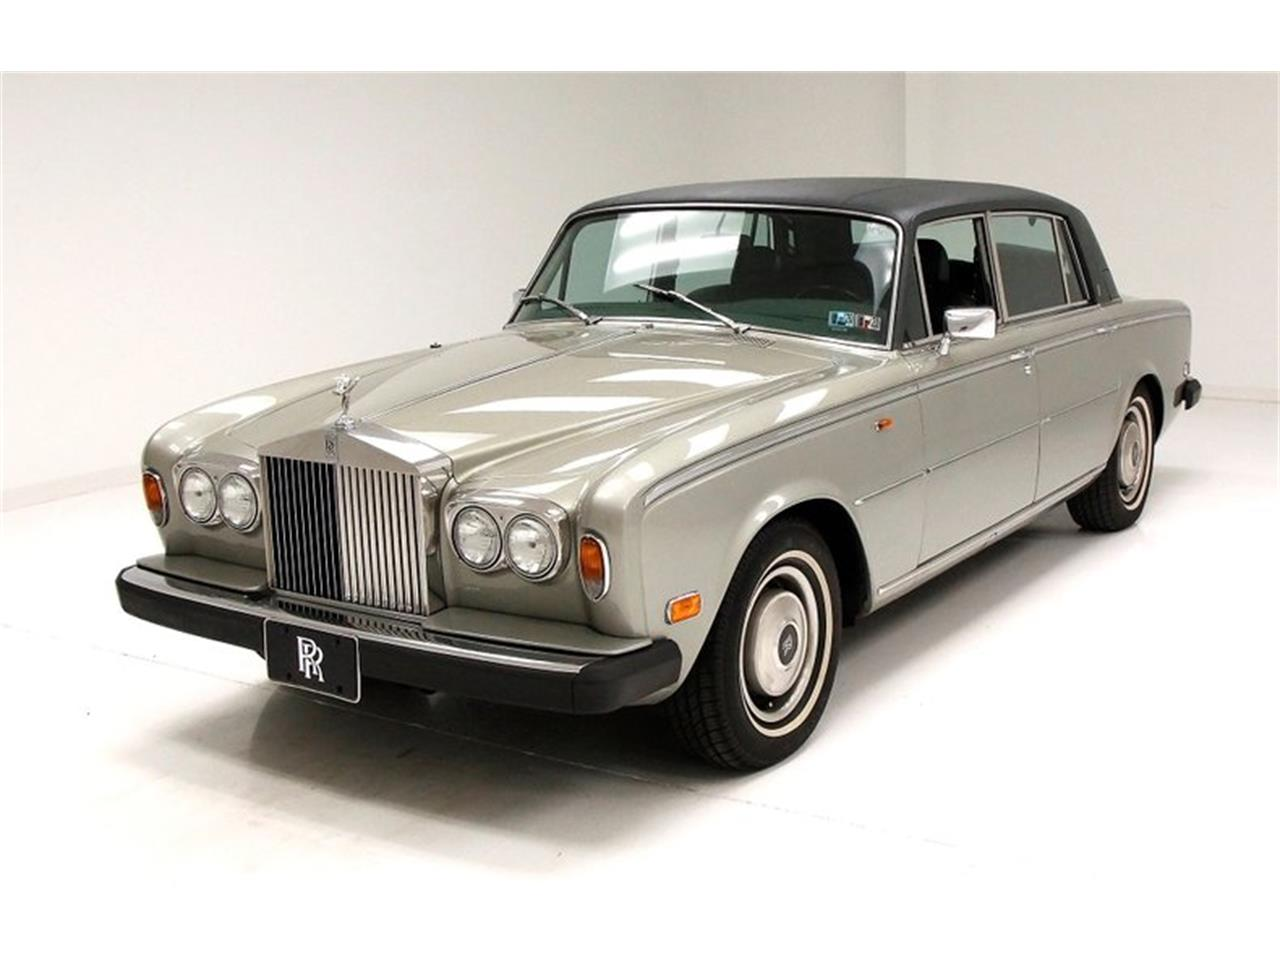 1980 Rolls-Royce Silver Wraith for sale in Morgantown, PA